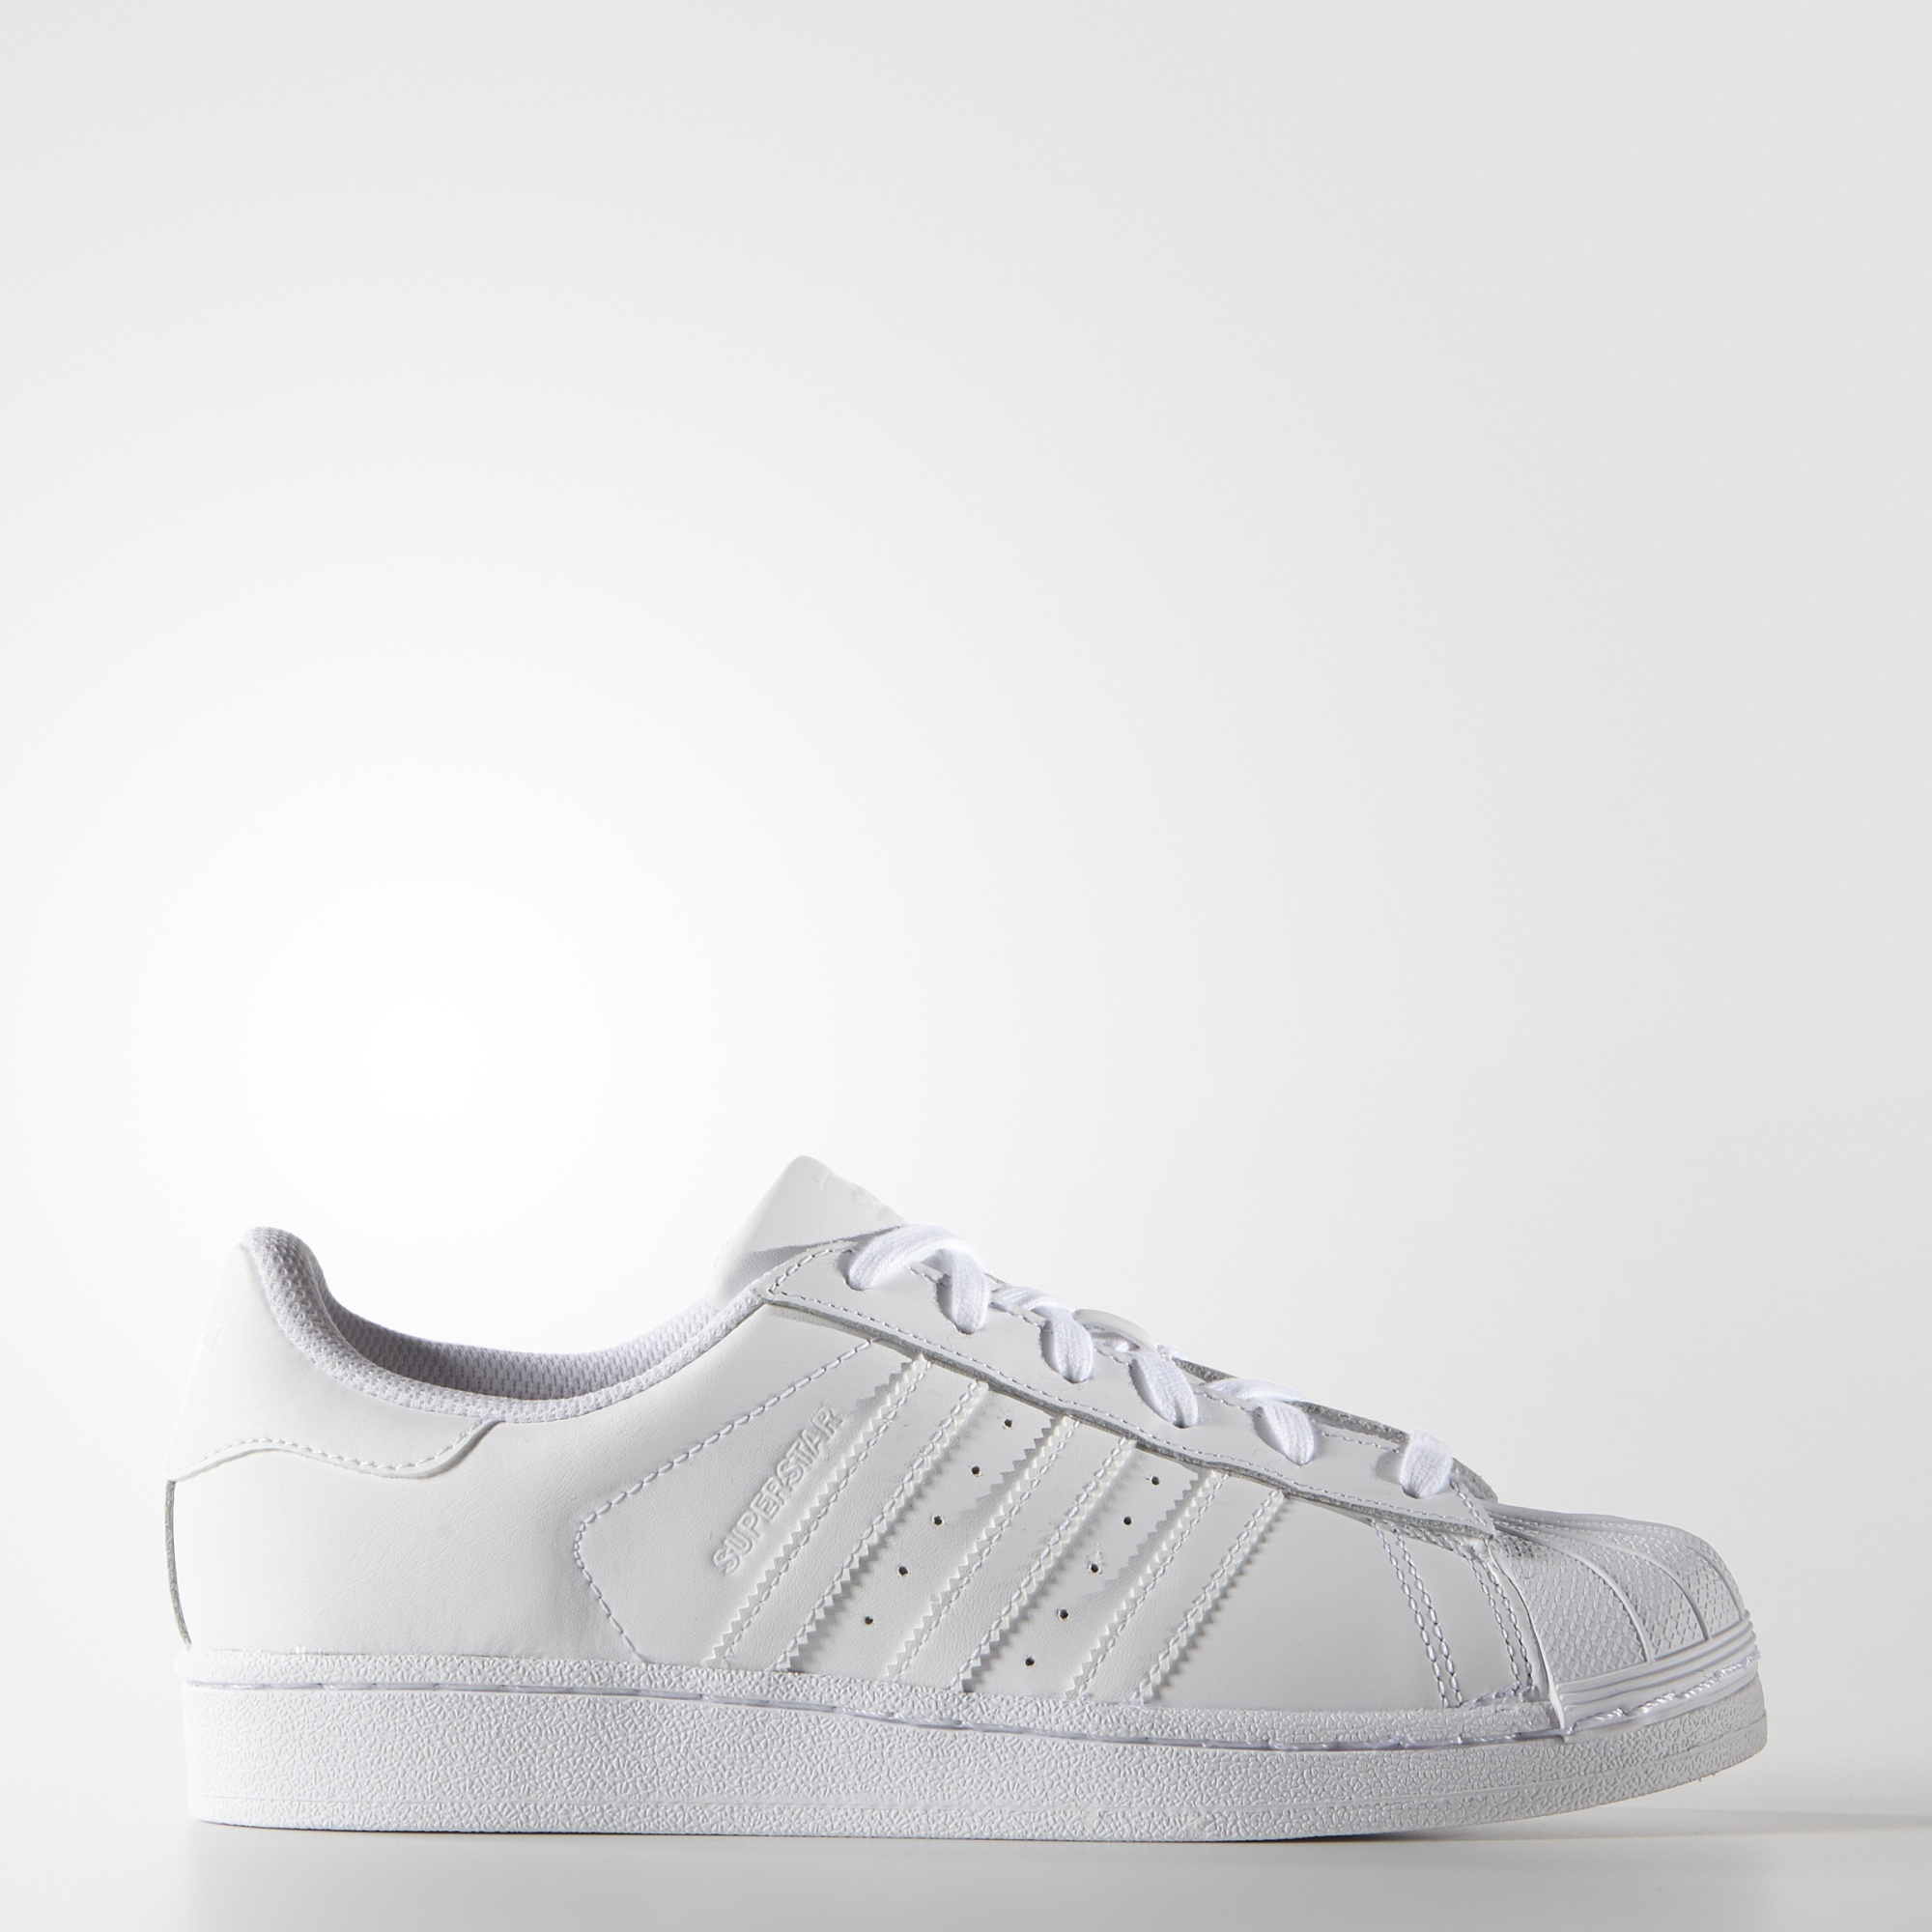 the latest dda4b 337b8 adidas superstar pride pack uomo prezzo